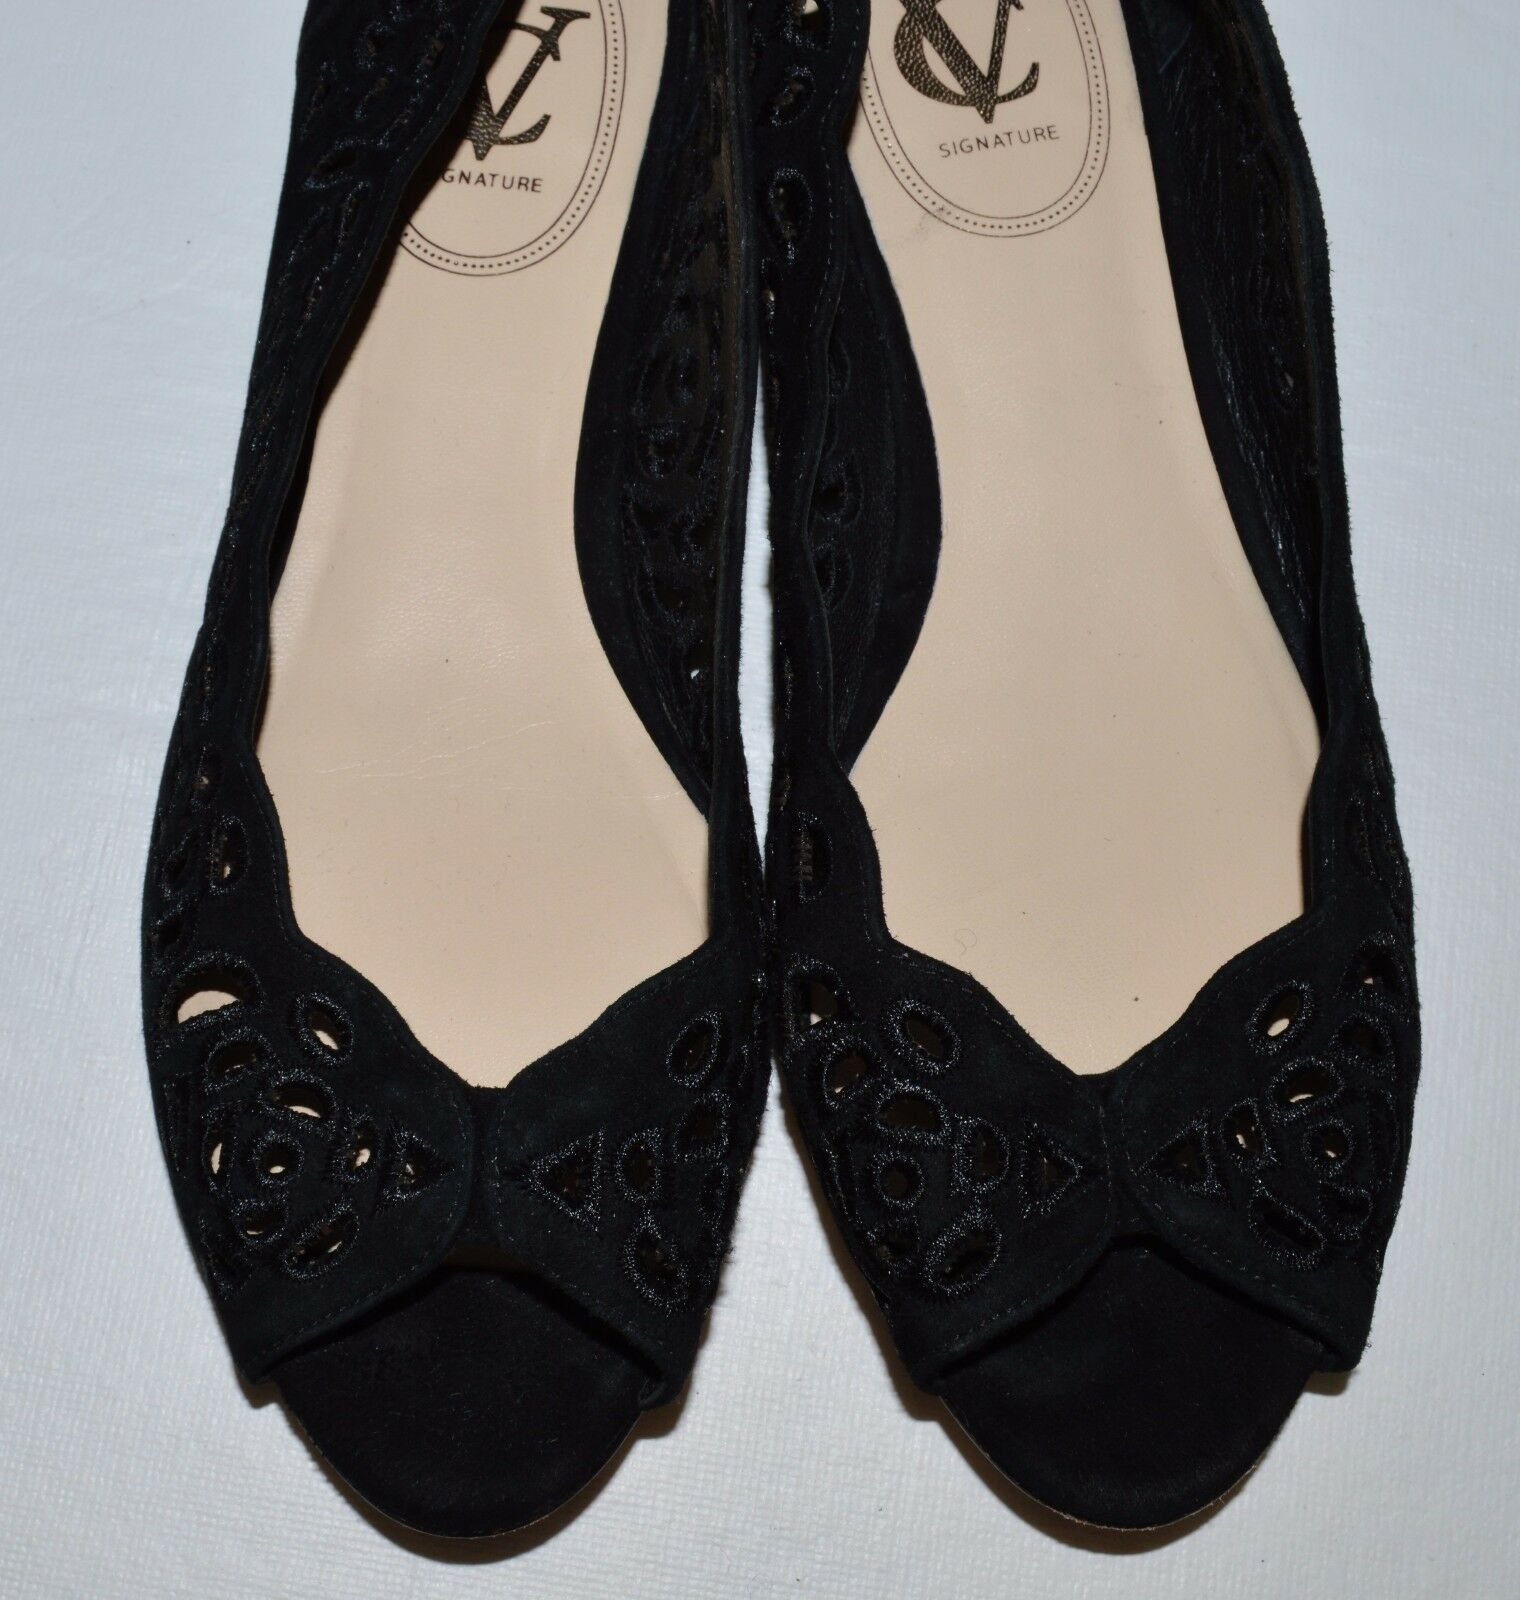 f0c5f6953a1 ... VC VINCE CAMUTO SIGNATURE CATLYN SZ 7 M 37 SUEDE BLACK SUEDE 37 OPEN  TOE FLATS ...